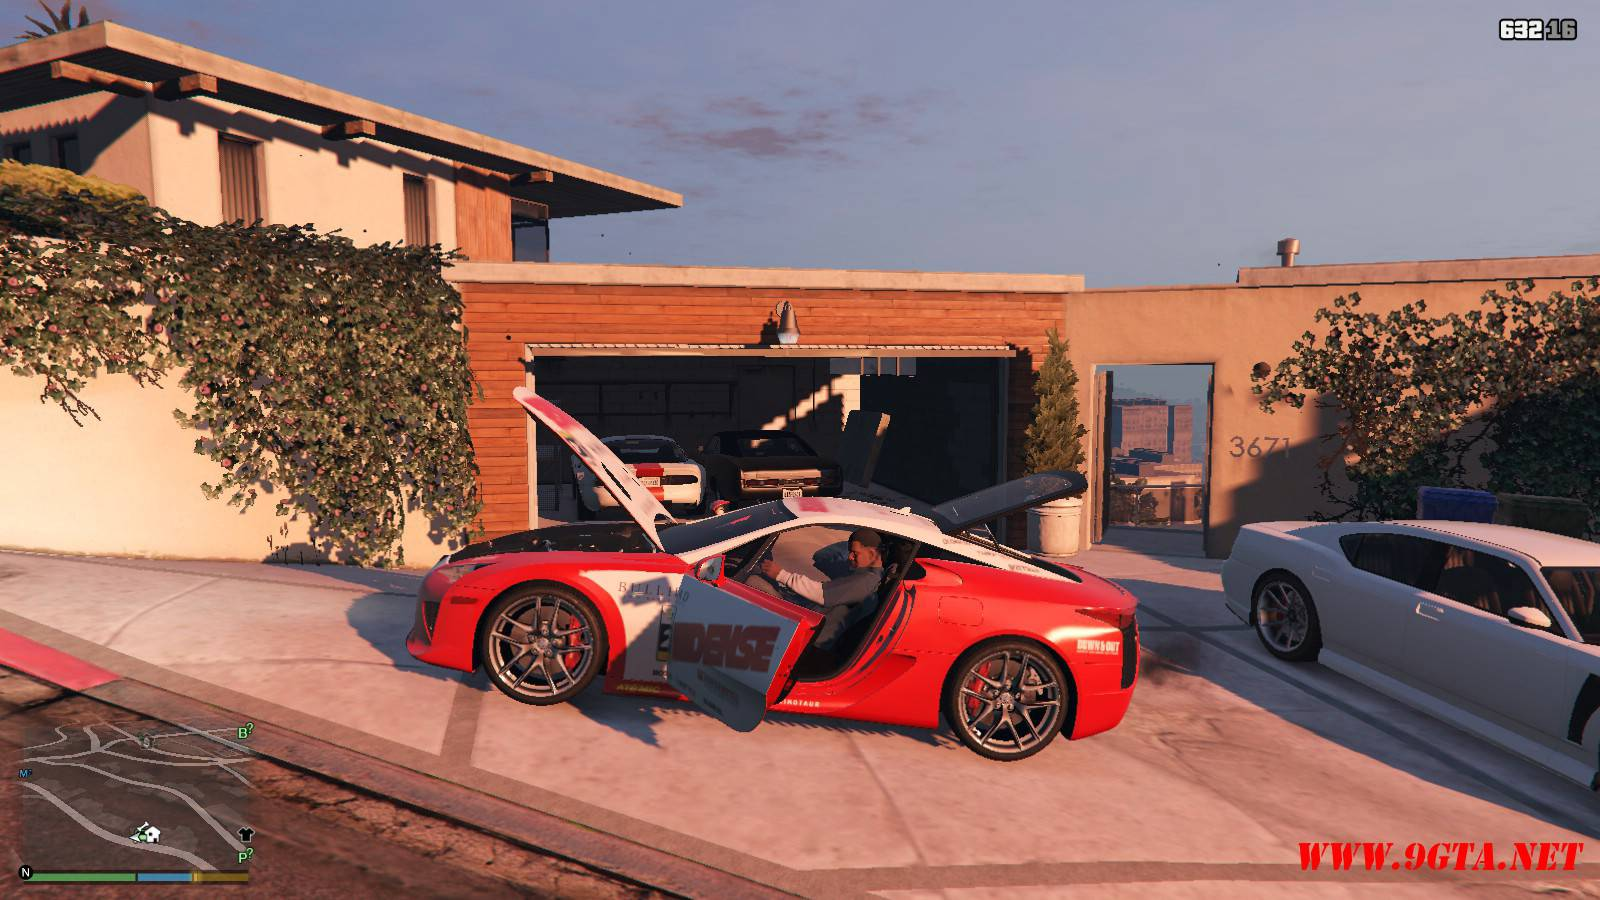 2010 Lexus LFA v2.0 Mod For GTA5 (13)